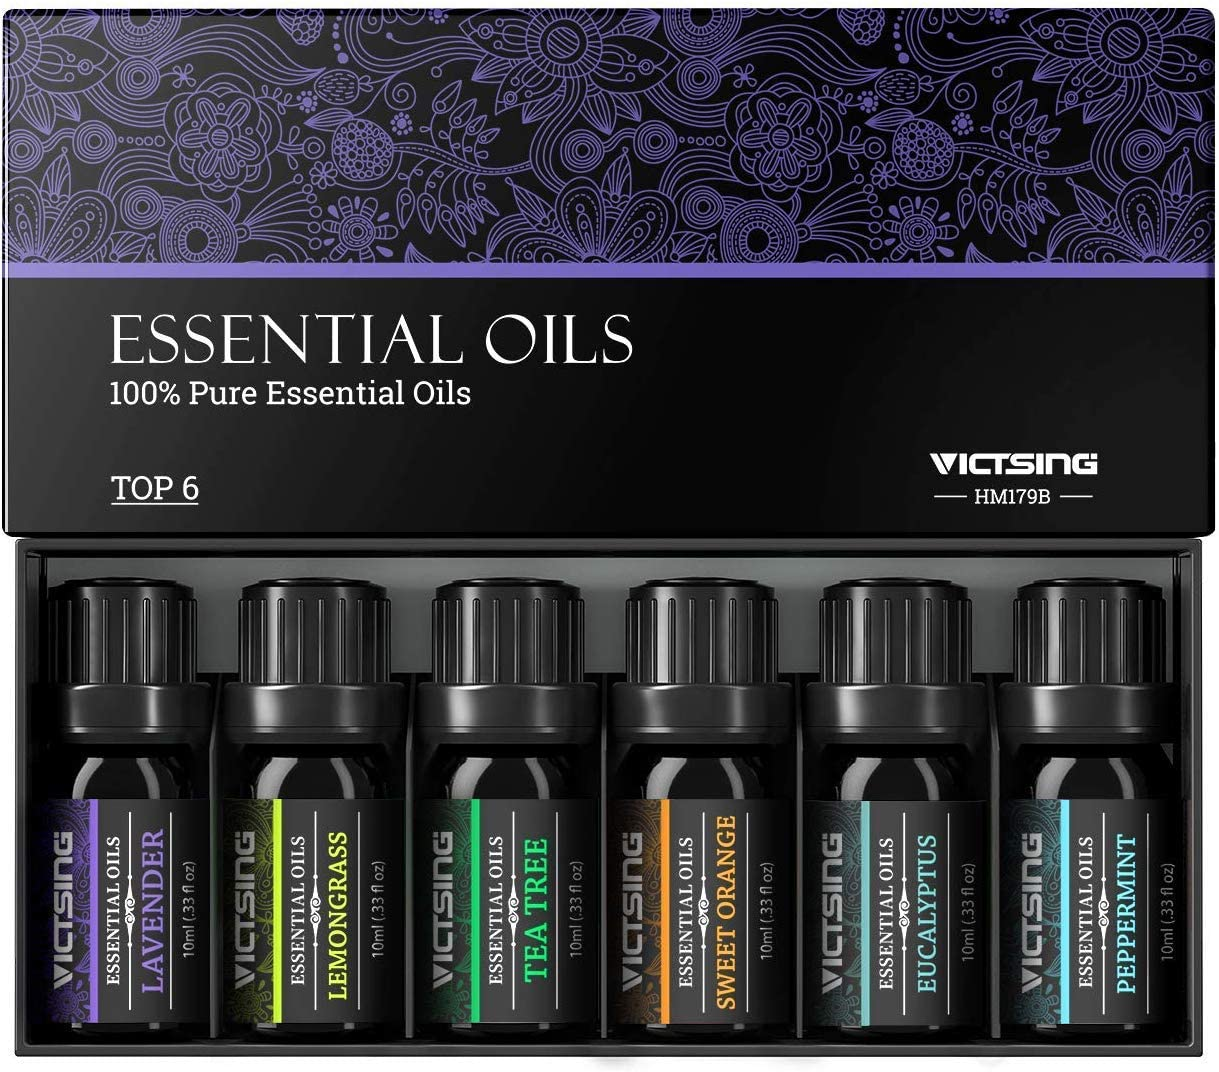 victsing essential oil